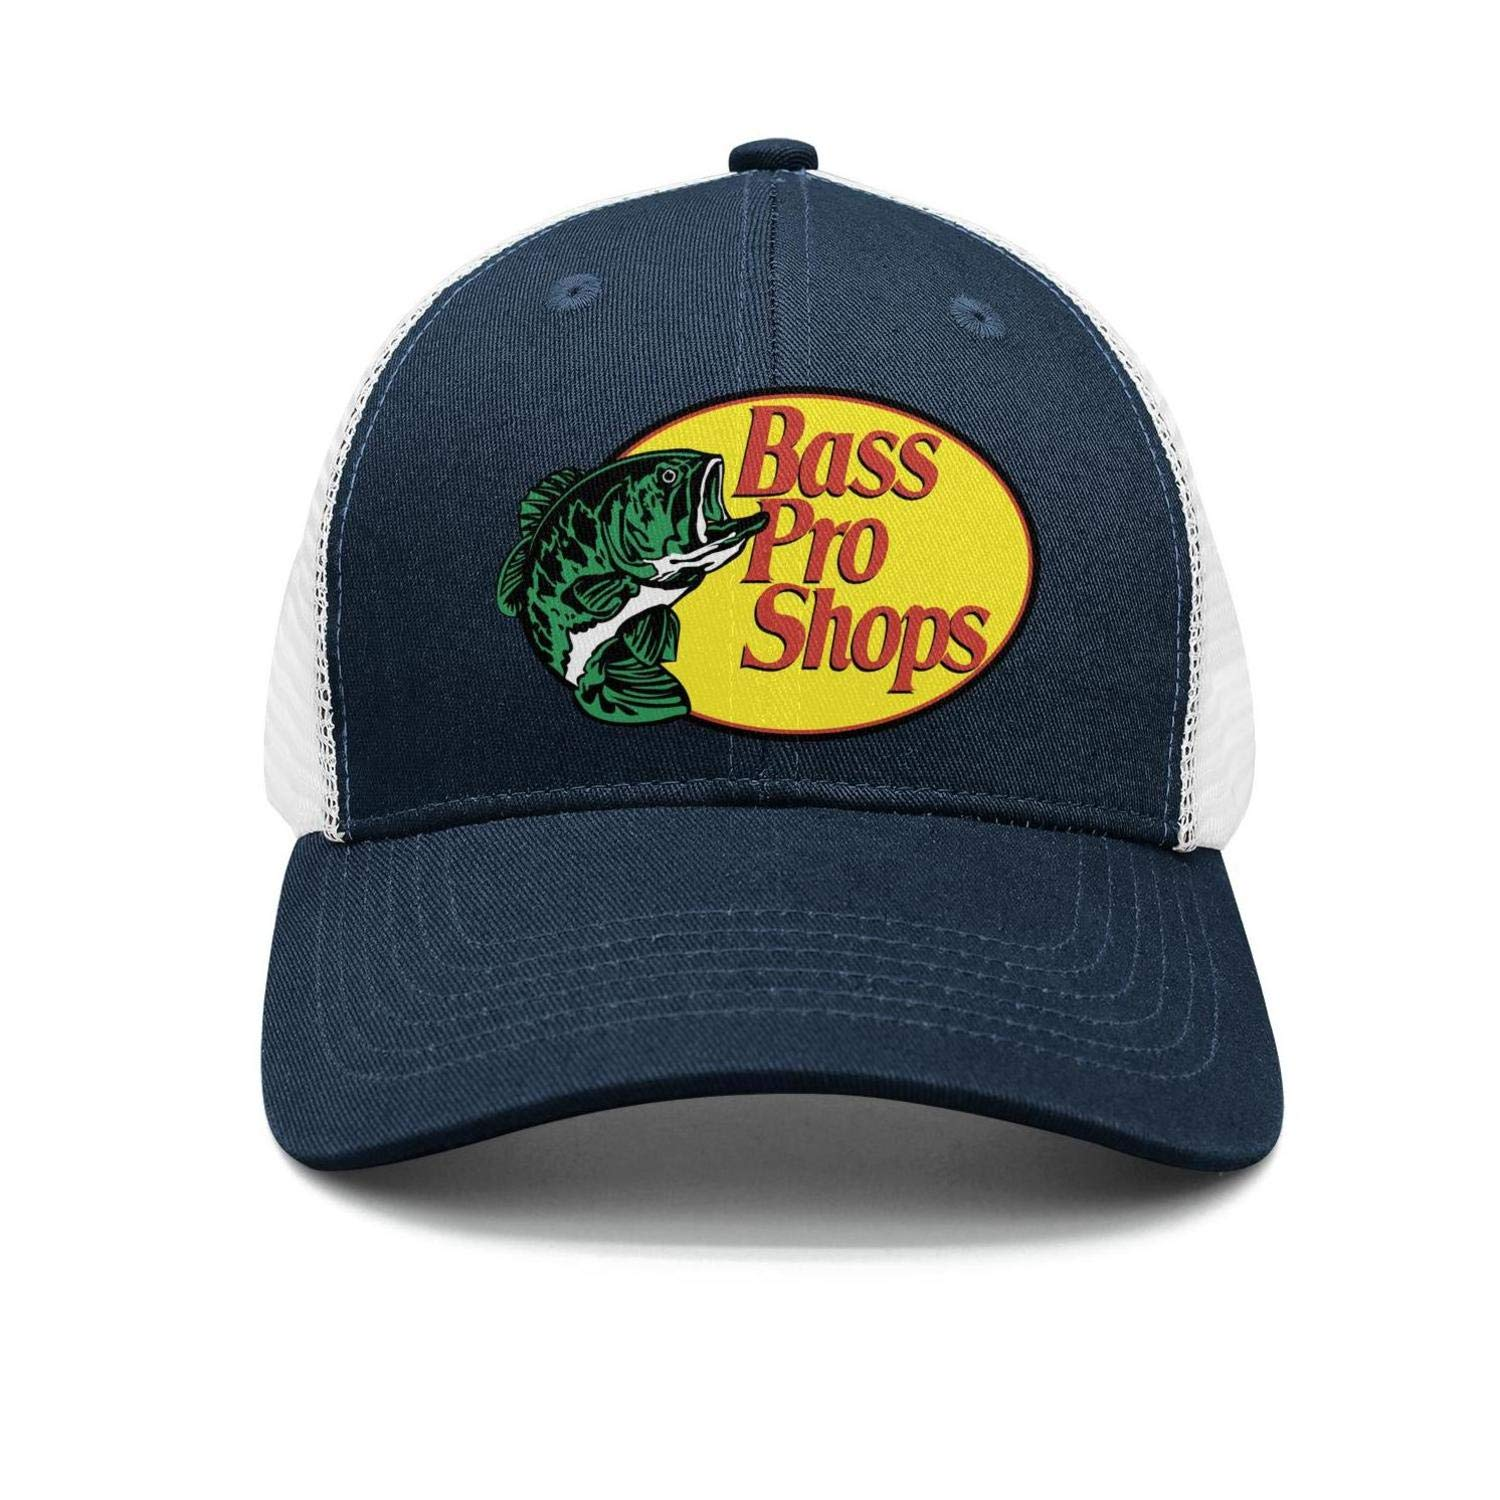 Bass-Pro-Shops-Gone-Fishing-Logo-Classic Adjustable Mesh Unisex Dad Hat Caps